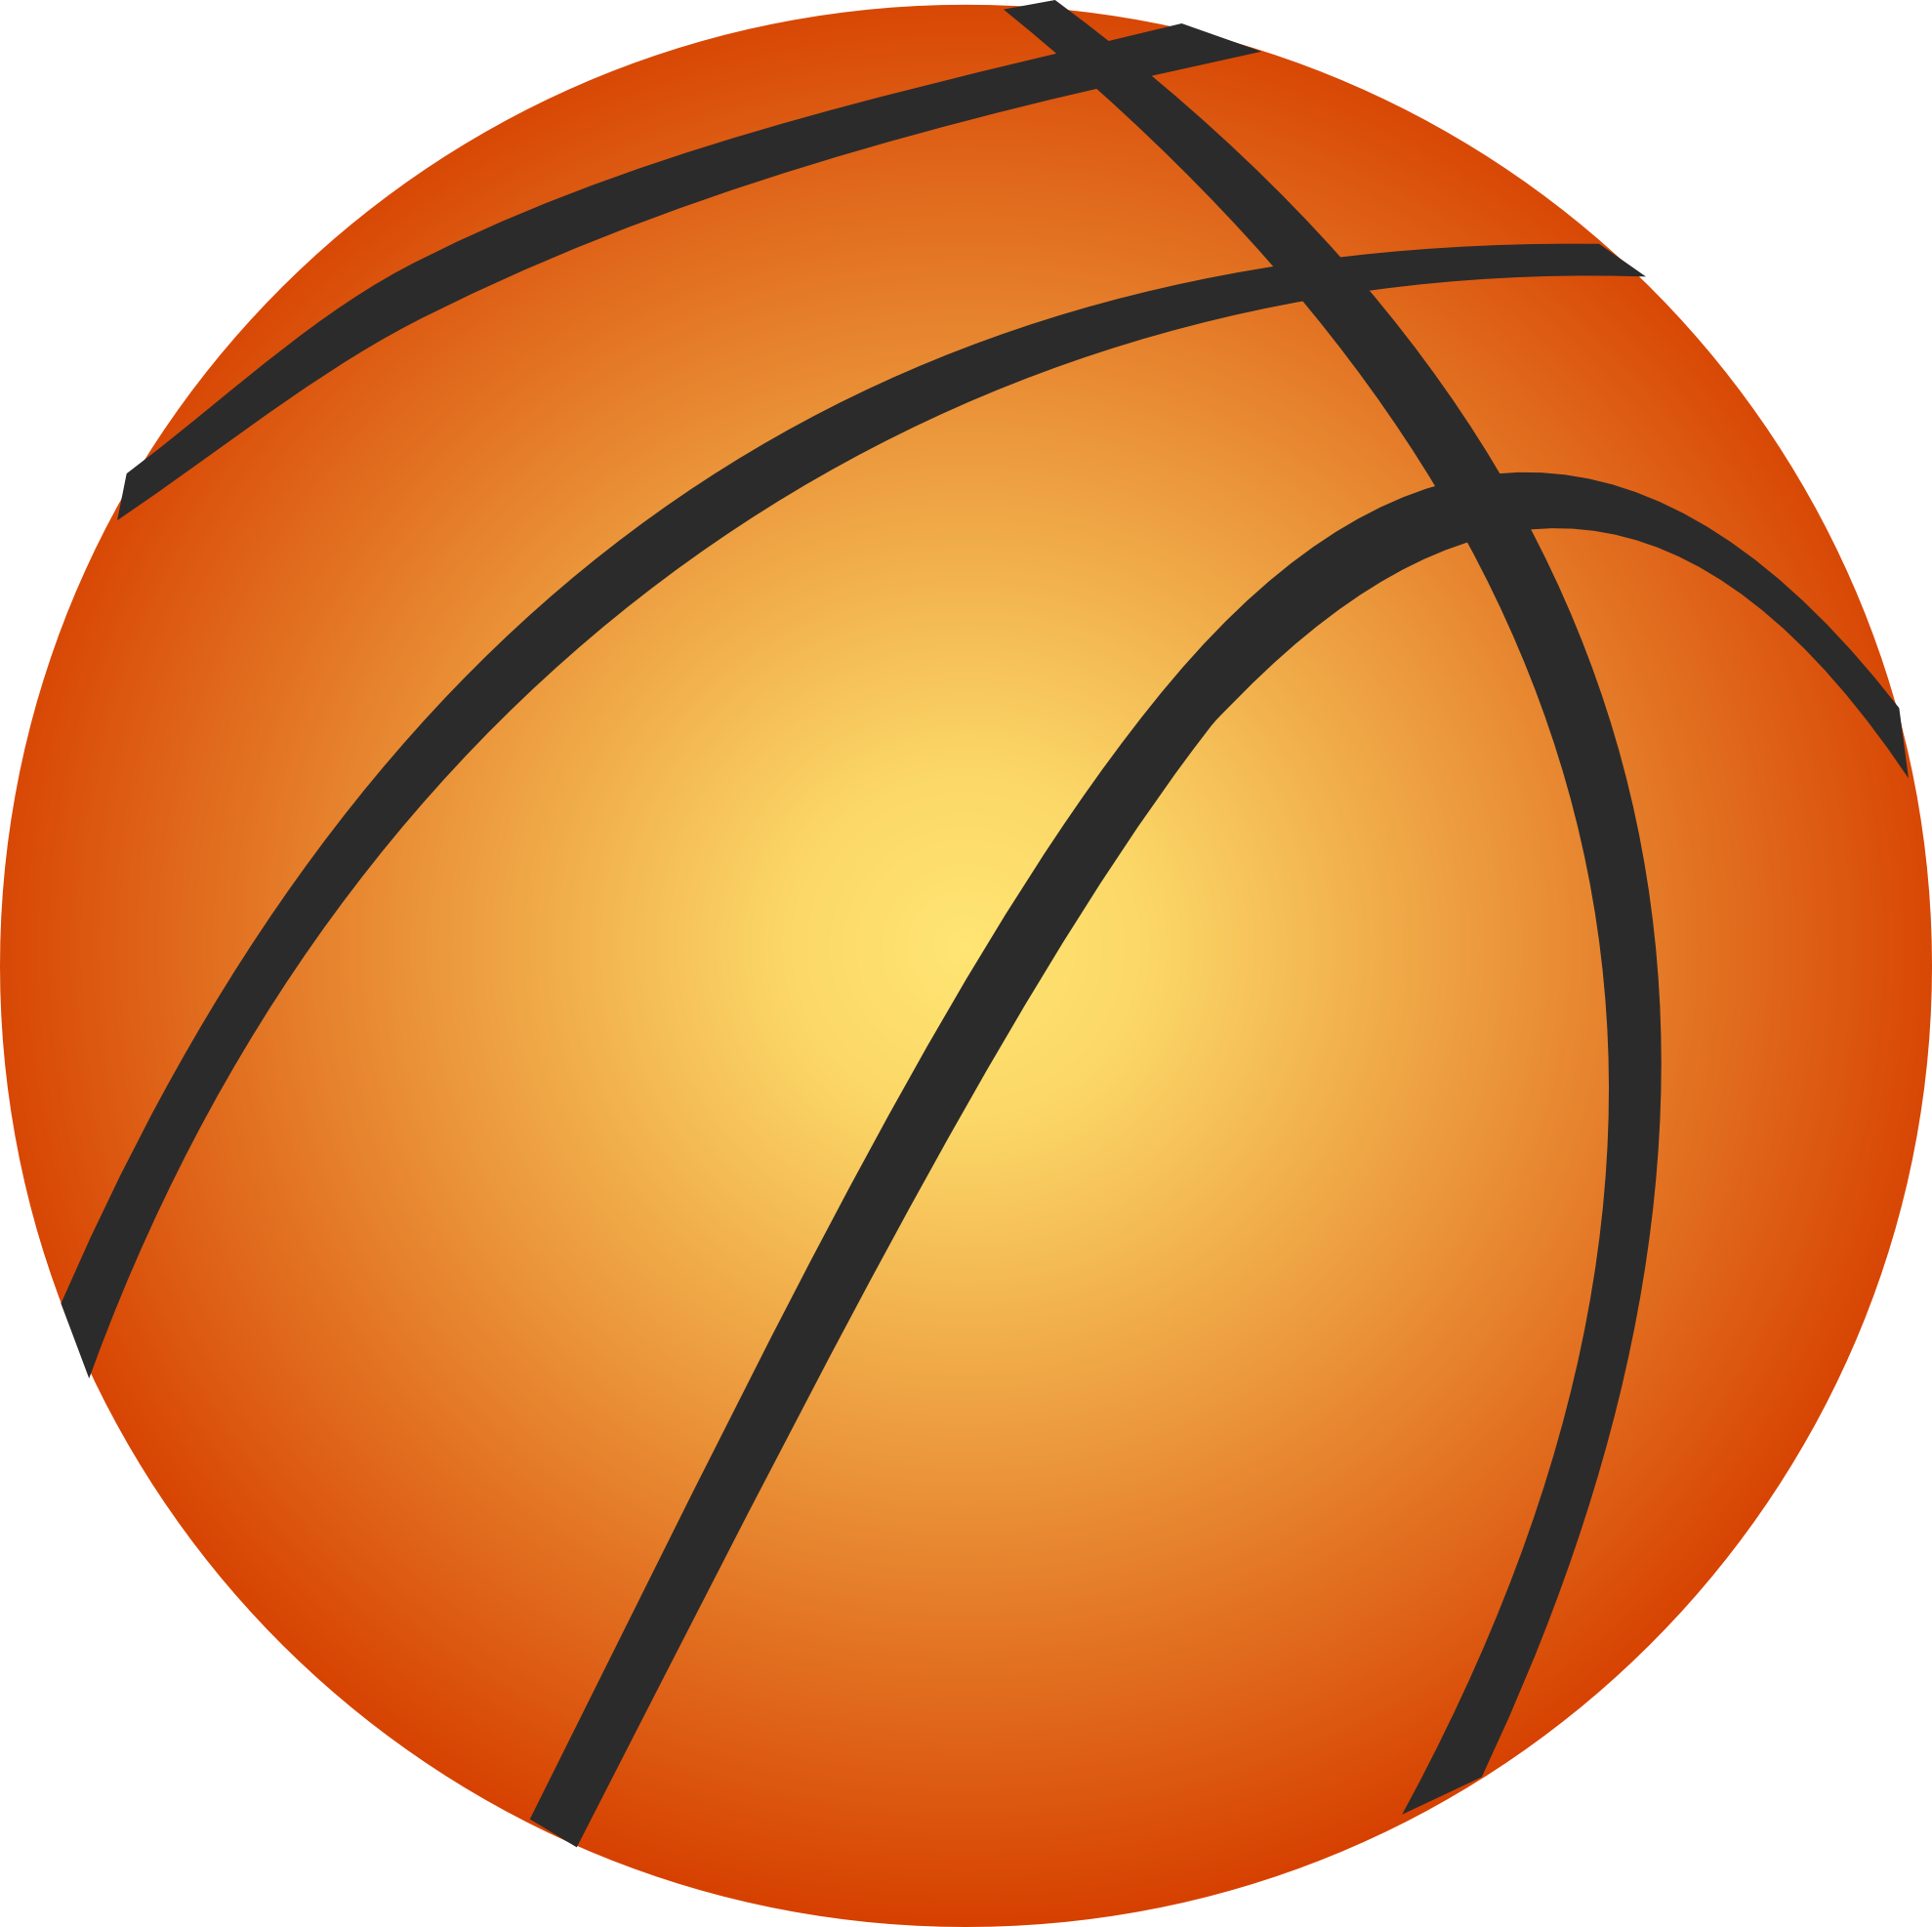 Basketball and volleyball clipart. Ball clip art tags